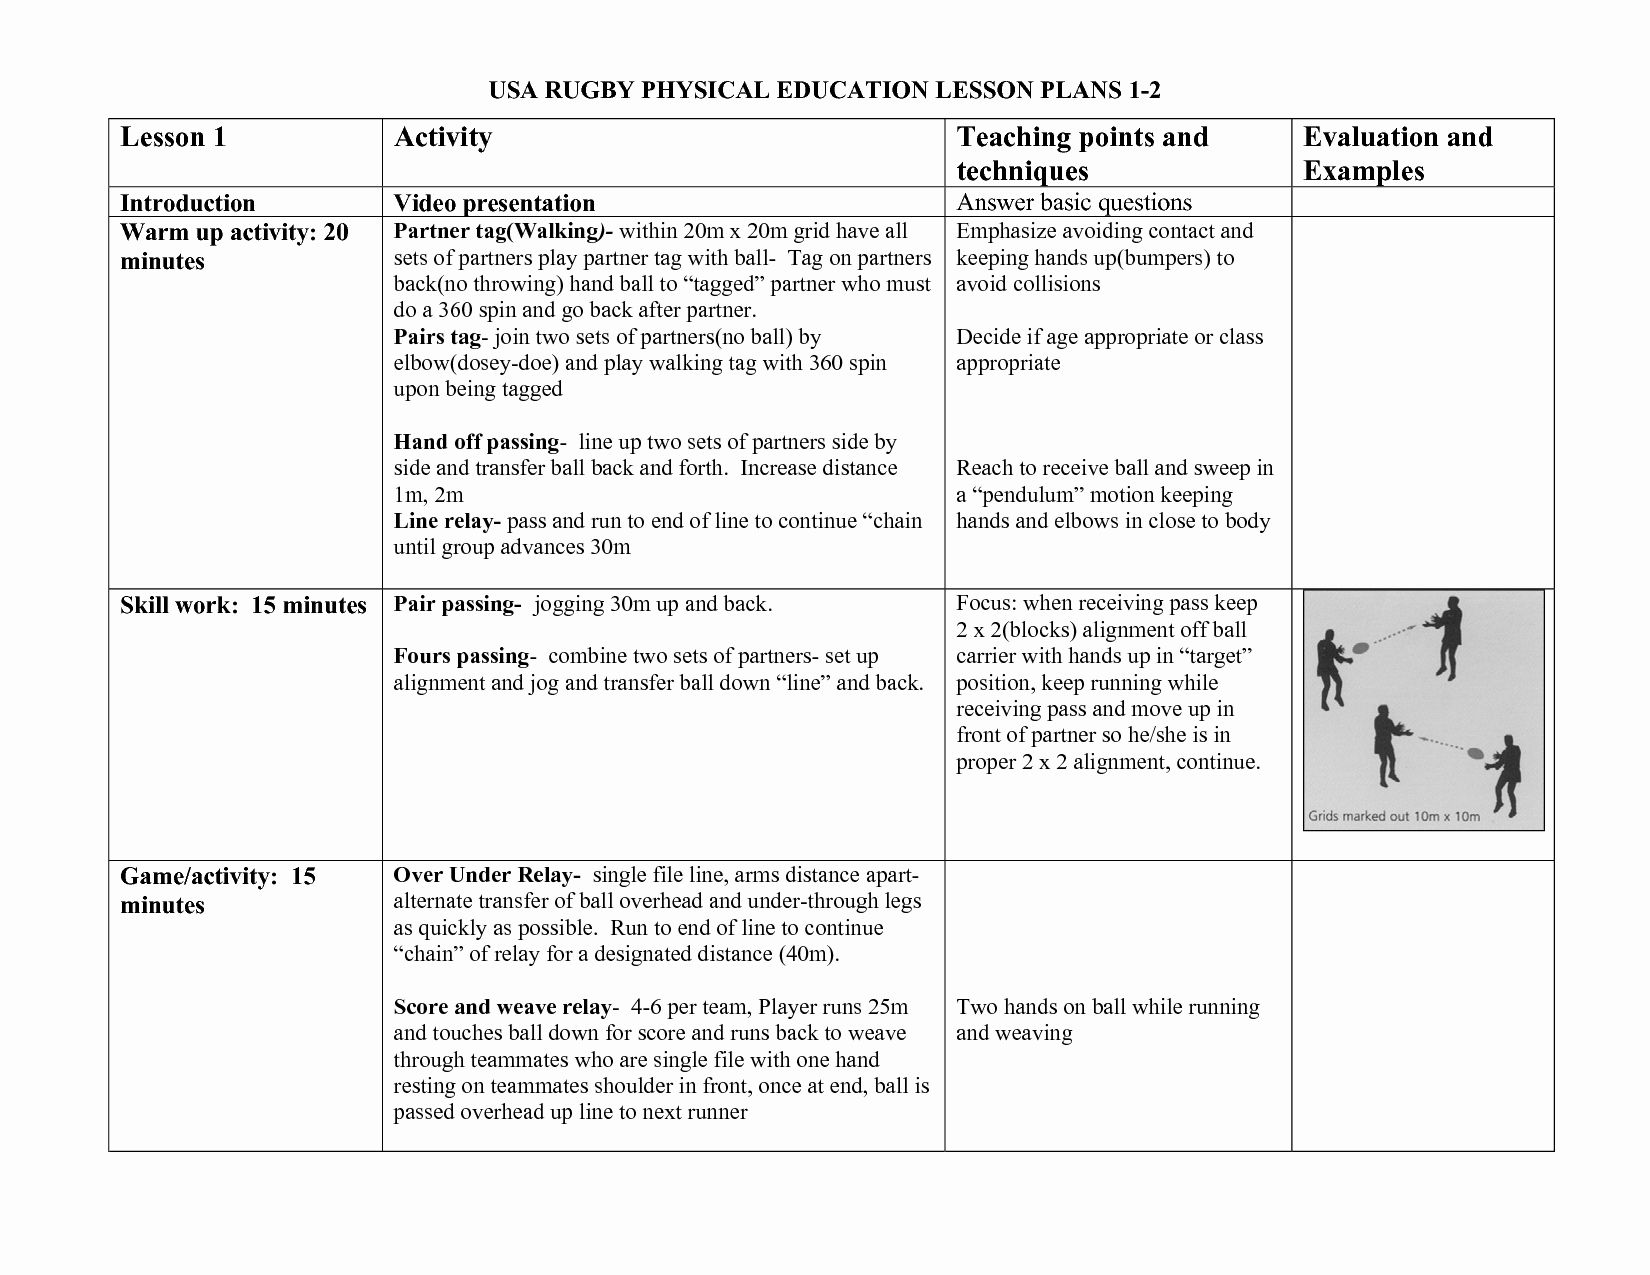 Physical Education Lesson Plans Template Luxury Best S Of Physical Education Lesson Plan Education Lesson Plans Physical Education Lessons Writing Lesson Plans Physical education lesson plan template